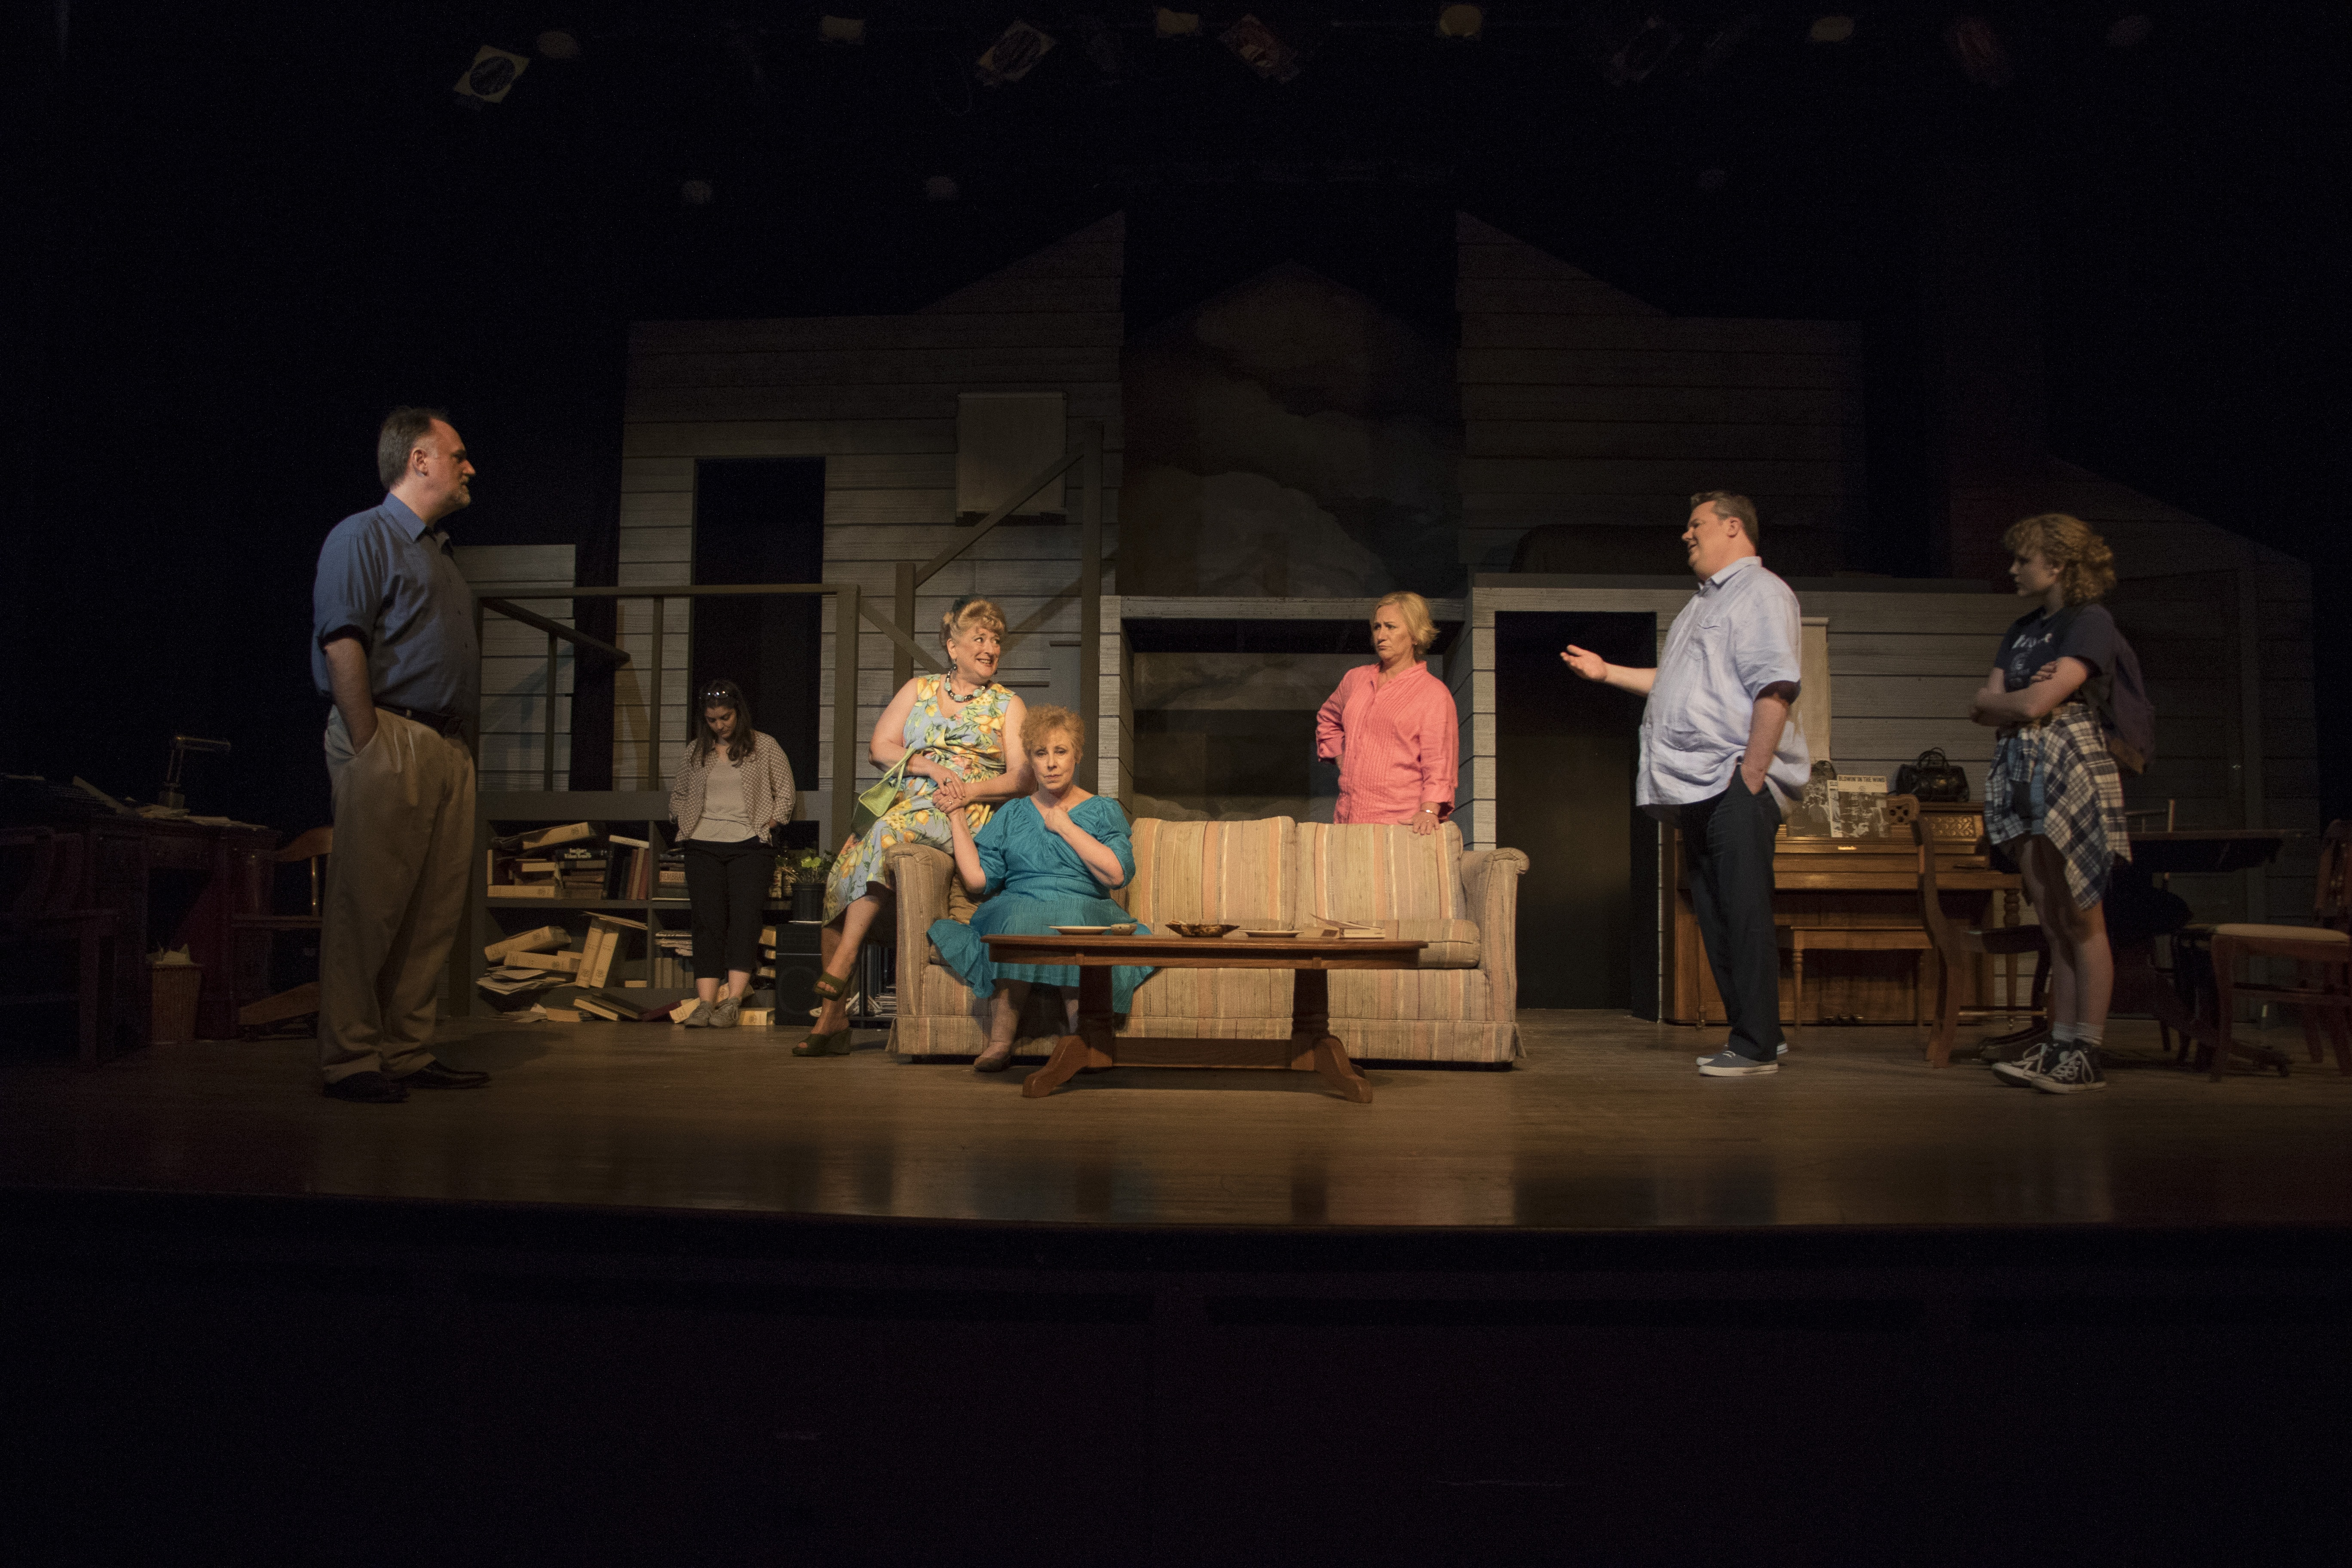 L-R: Michael Fisher, Carlotta Capuano, Gayle Nichols-Grimes, Diane Sams, Nicky McDonnell, Tom Flatt, and Camille Neumann in August: Osage County, now playing at the Little Theatre of Alexandria. Photo by Matt Liptak.